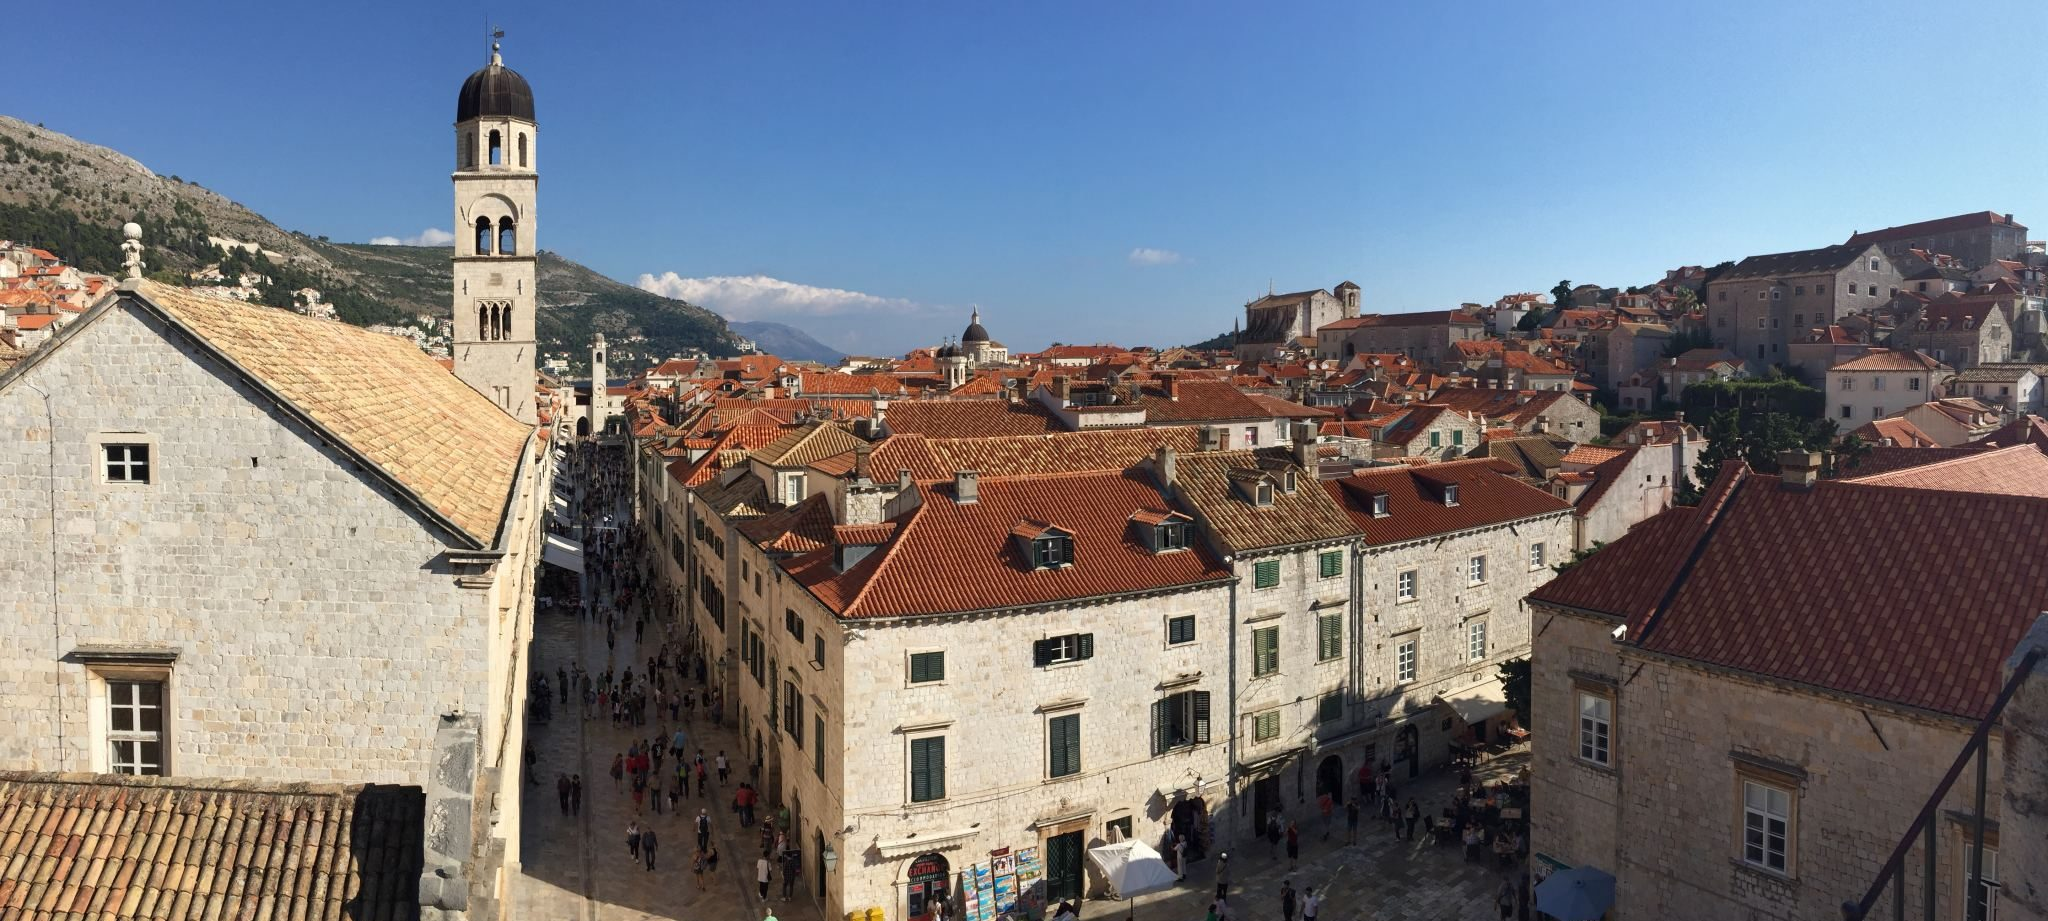 4 days in Dubrovnik, Croatia